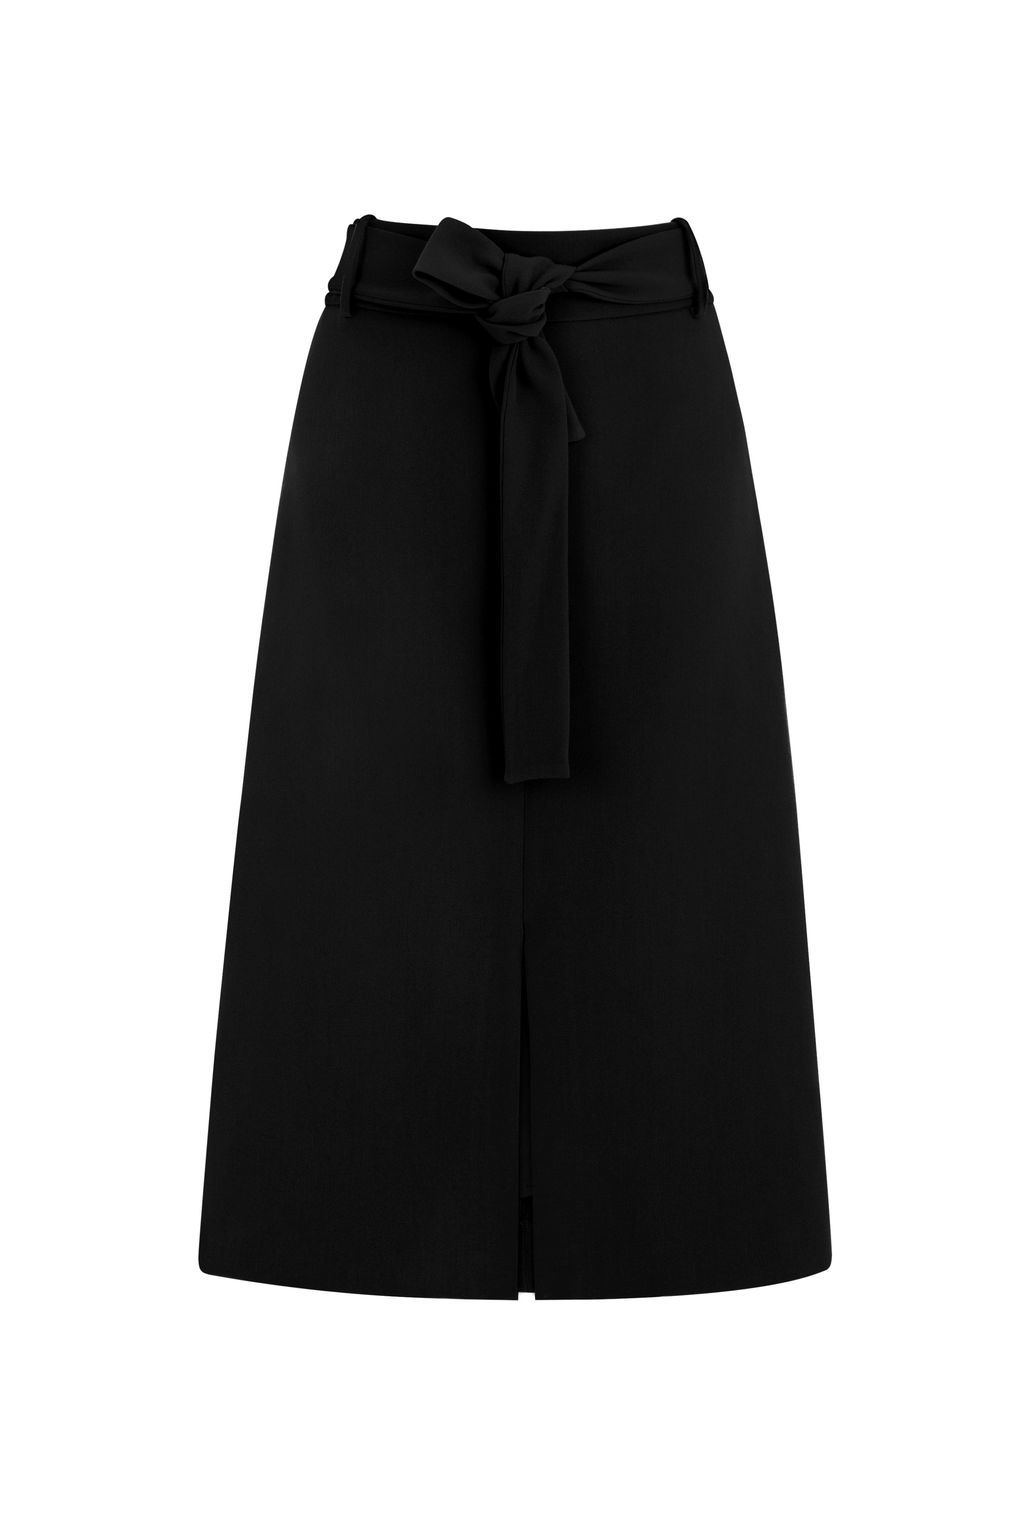 Belted Midi Skirt, Black - length: below the knee; pattern: plain; fit: loose/voluminous; waist: high rise; predominant colour: black; occasions: work; style: a-line; fibres: polyester/polyamide - mix; pattern type: fabric; texture group: jersey - stretchy/drapey; season: s/s 2016